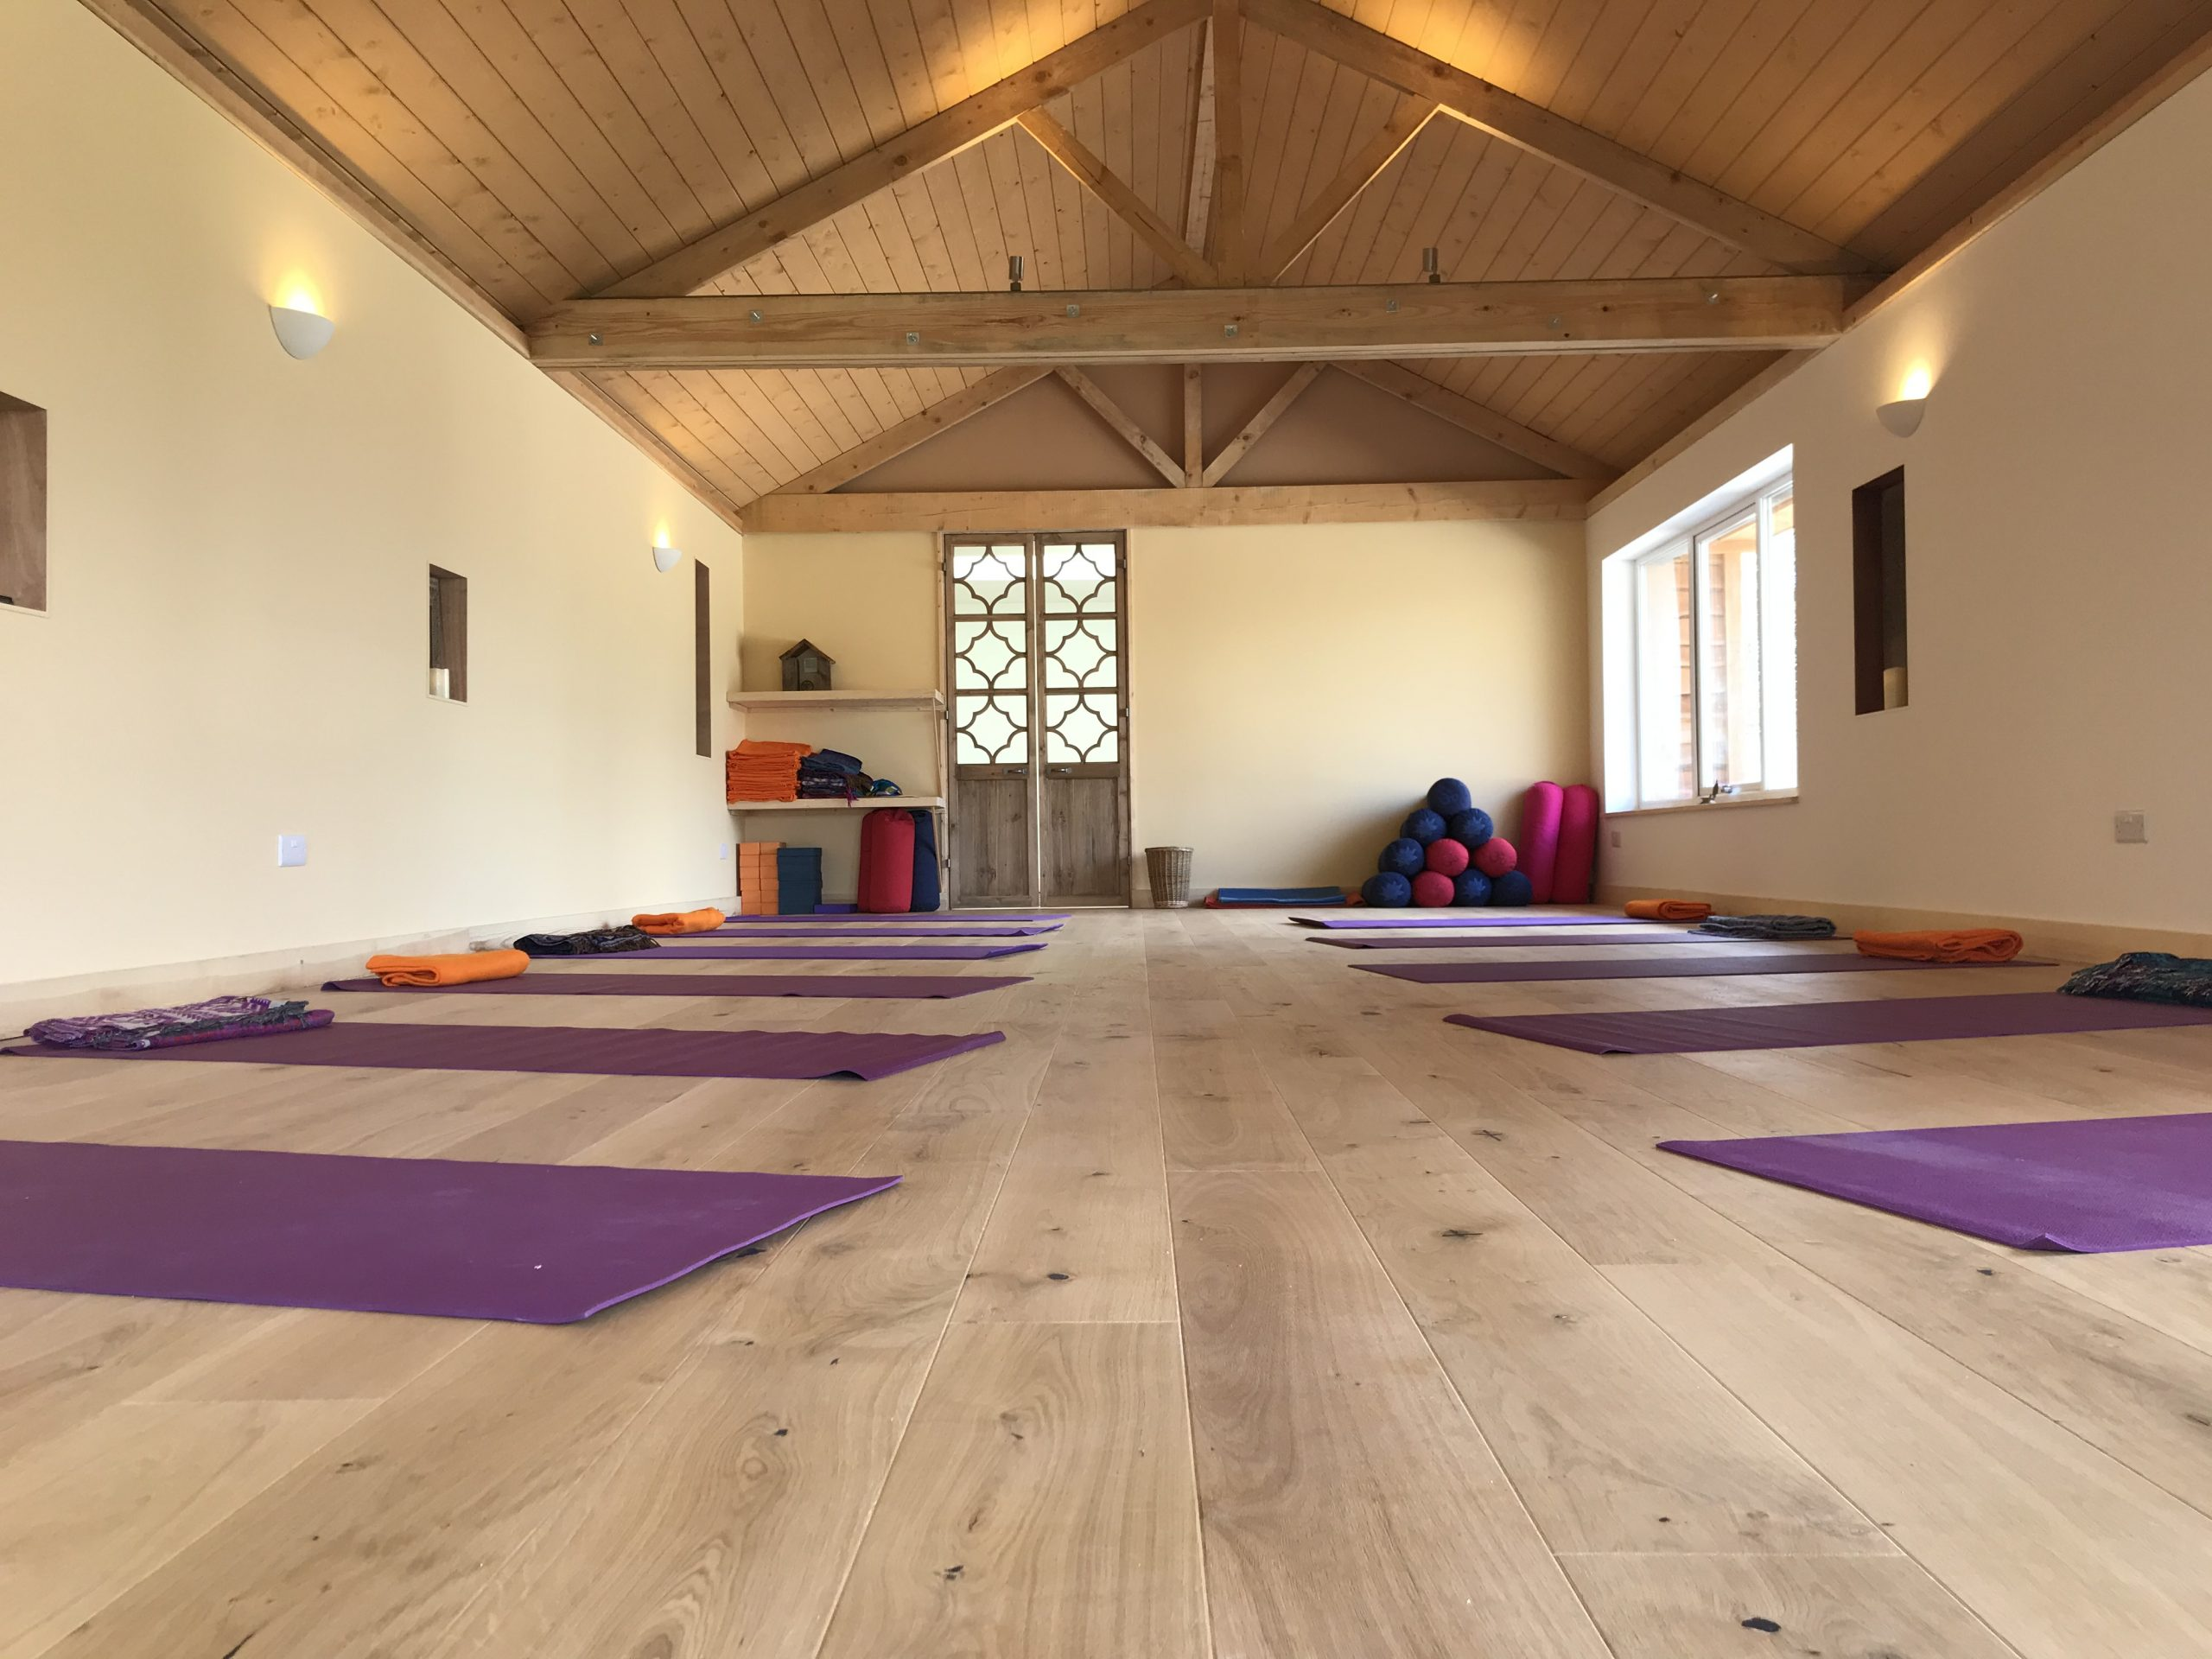 Neurogenic Yoga Classes Gentle Yoga With TRE for Relaxation and Health